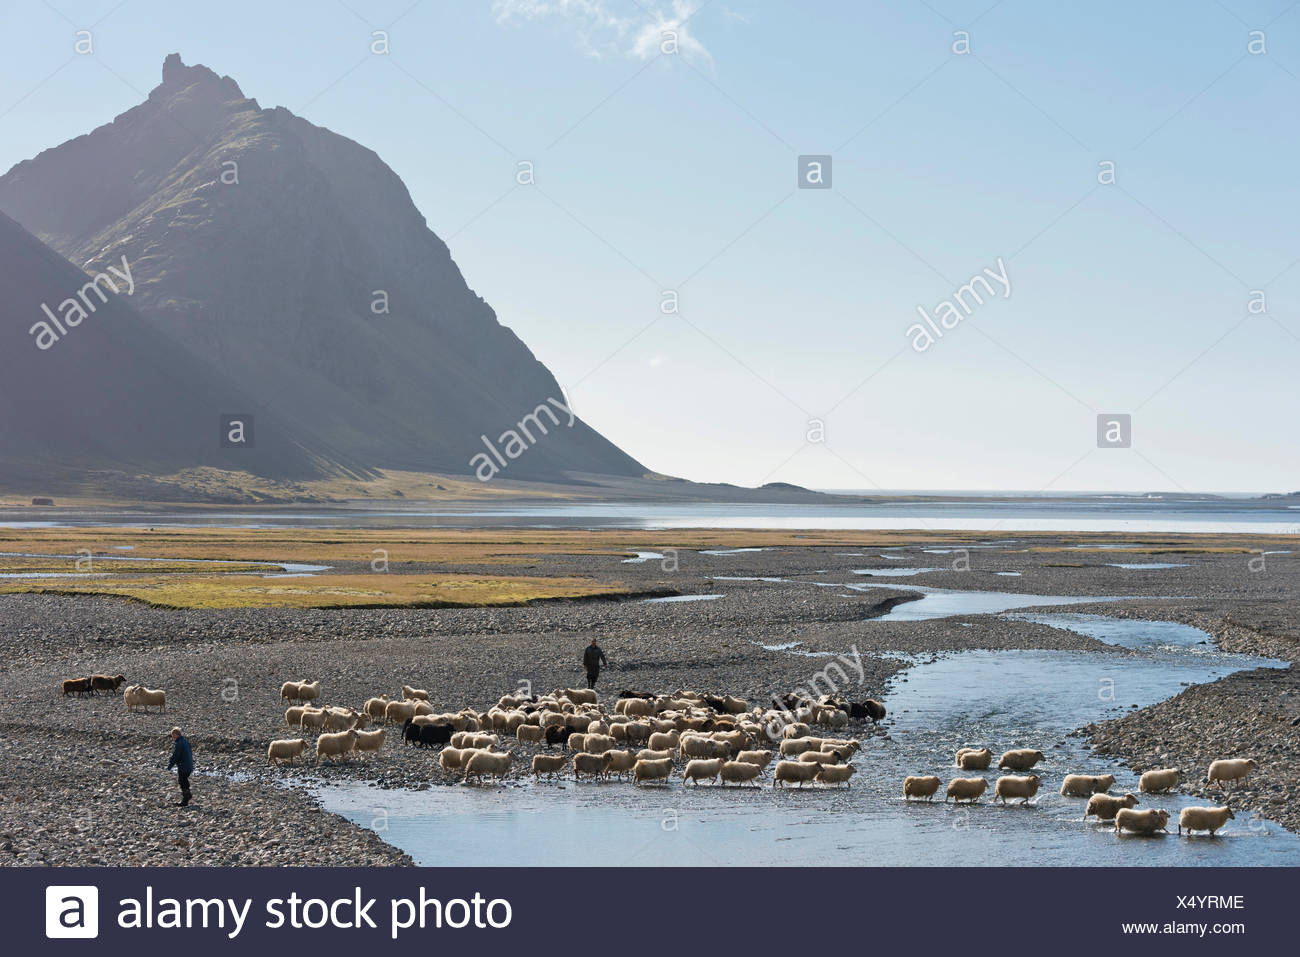 Sheep are rounded up on foot, sheep passing through a river, sheep transhumance, near Höfn, Iceland - Stock Image